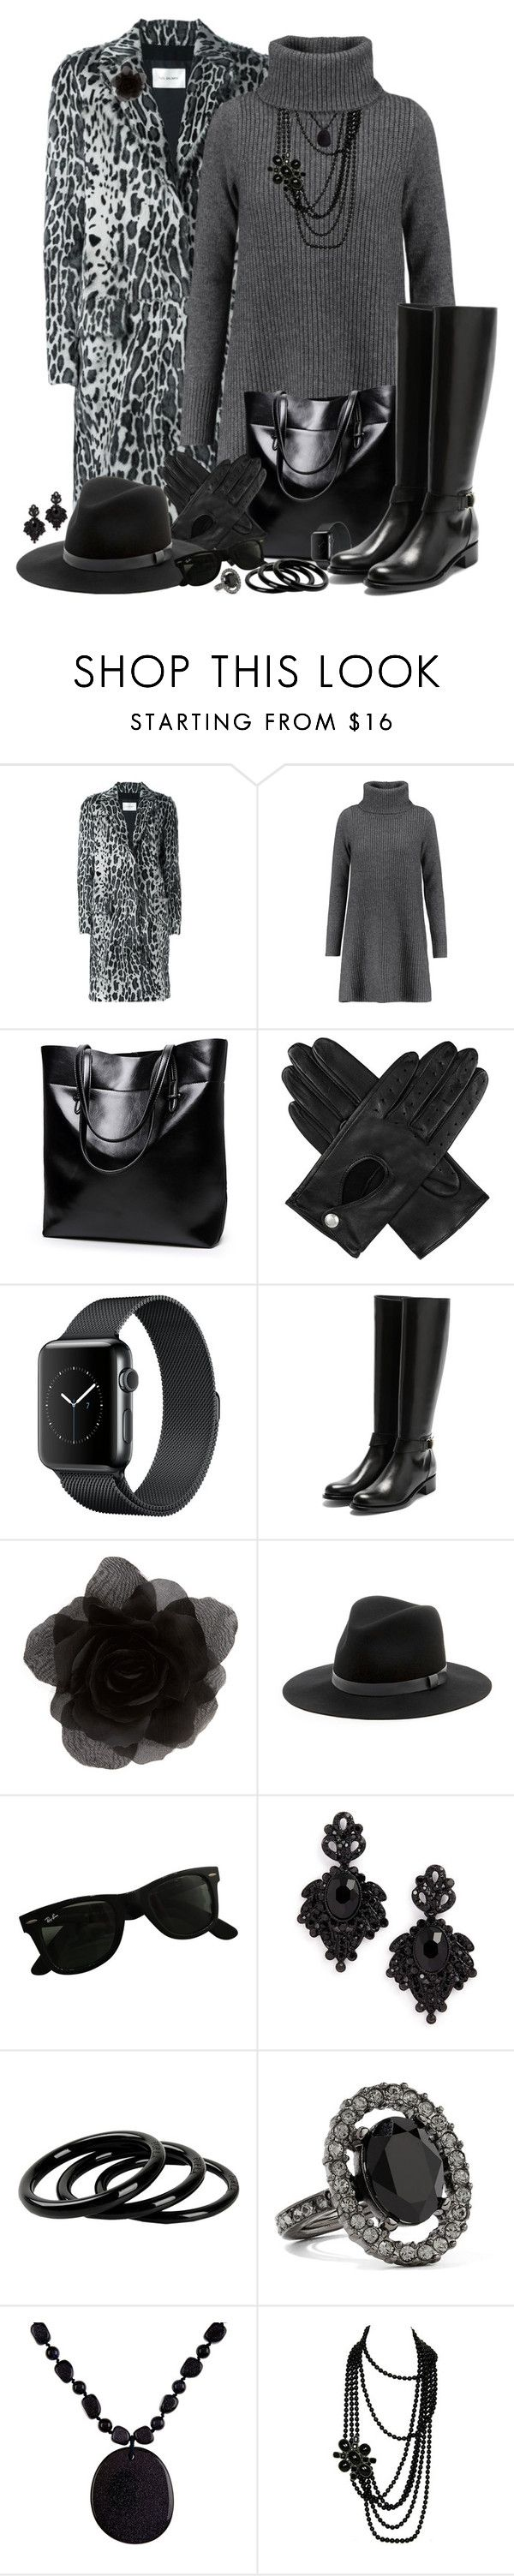 """Winter Coat"" by autumnwolf1965 ❤ liked on Polyvore featuring Yves Salomon, Madeleine Thompson, Dents, Rupert Sanderson, Accessorize, Sole Society, Ray-Ban, Tasha, Furla and Oscar de la Renta"